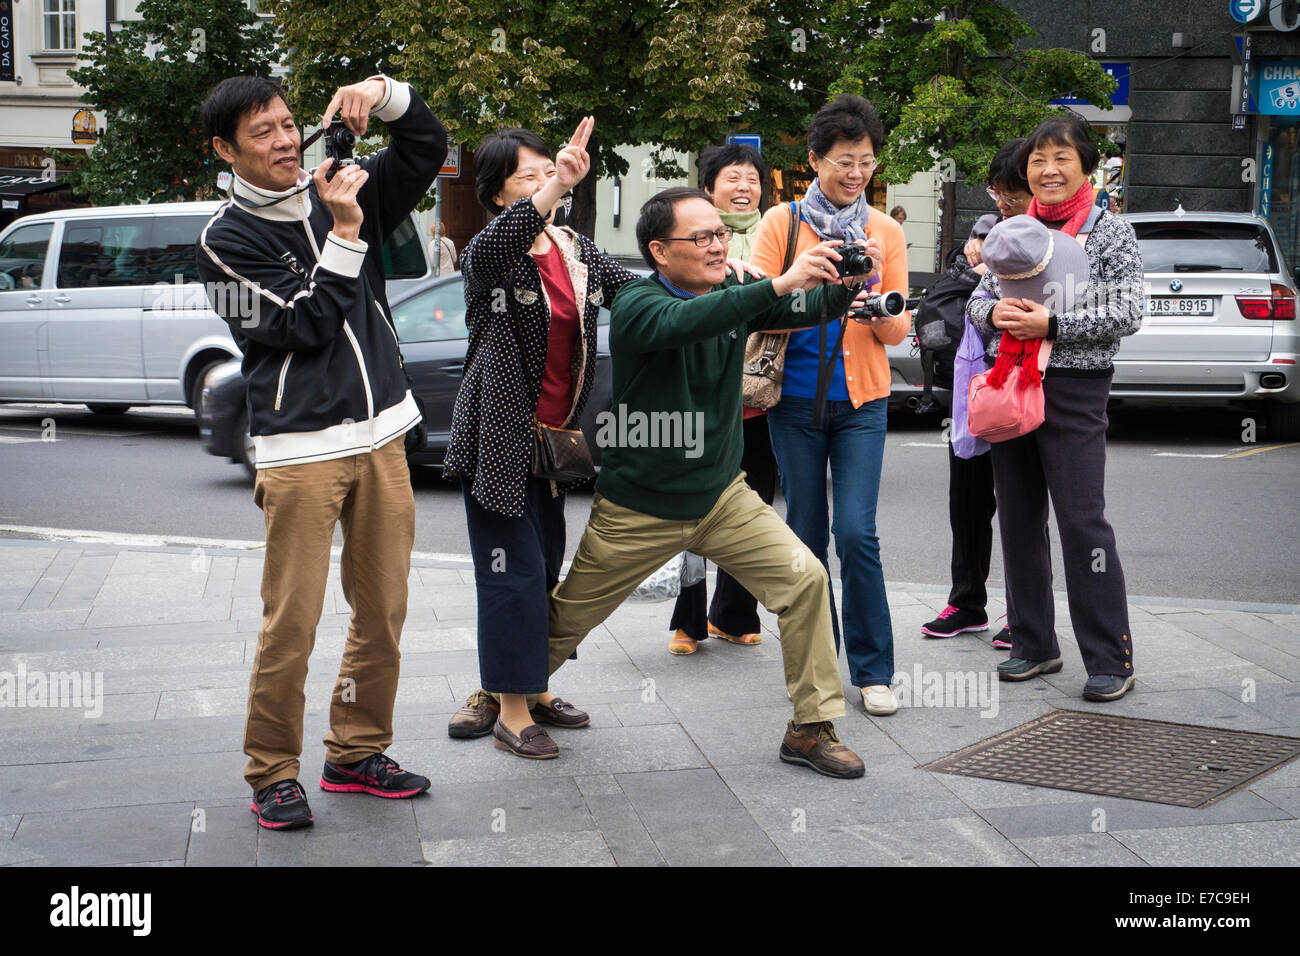 Asian tourists are taking photographs in Wenceslas Square in Prague, Czech Republic - Stock Image